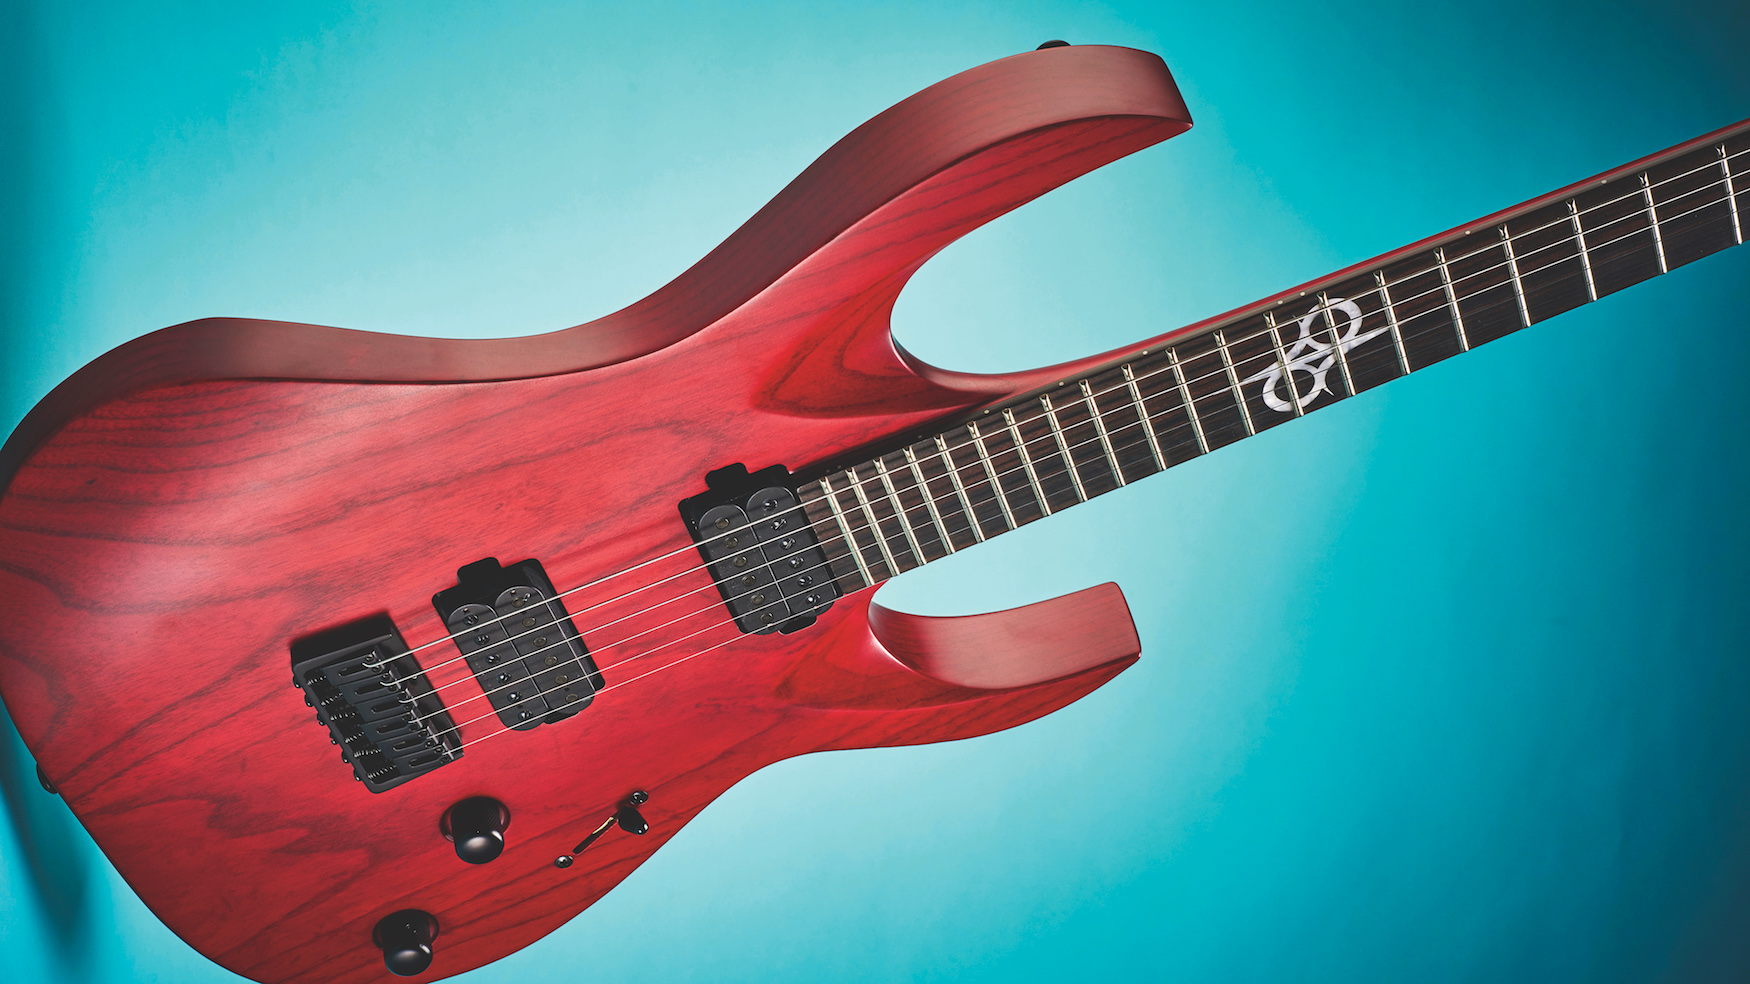 The 11 best electric guitars for metal: the best you can buy for